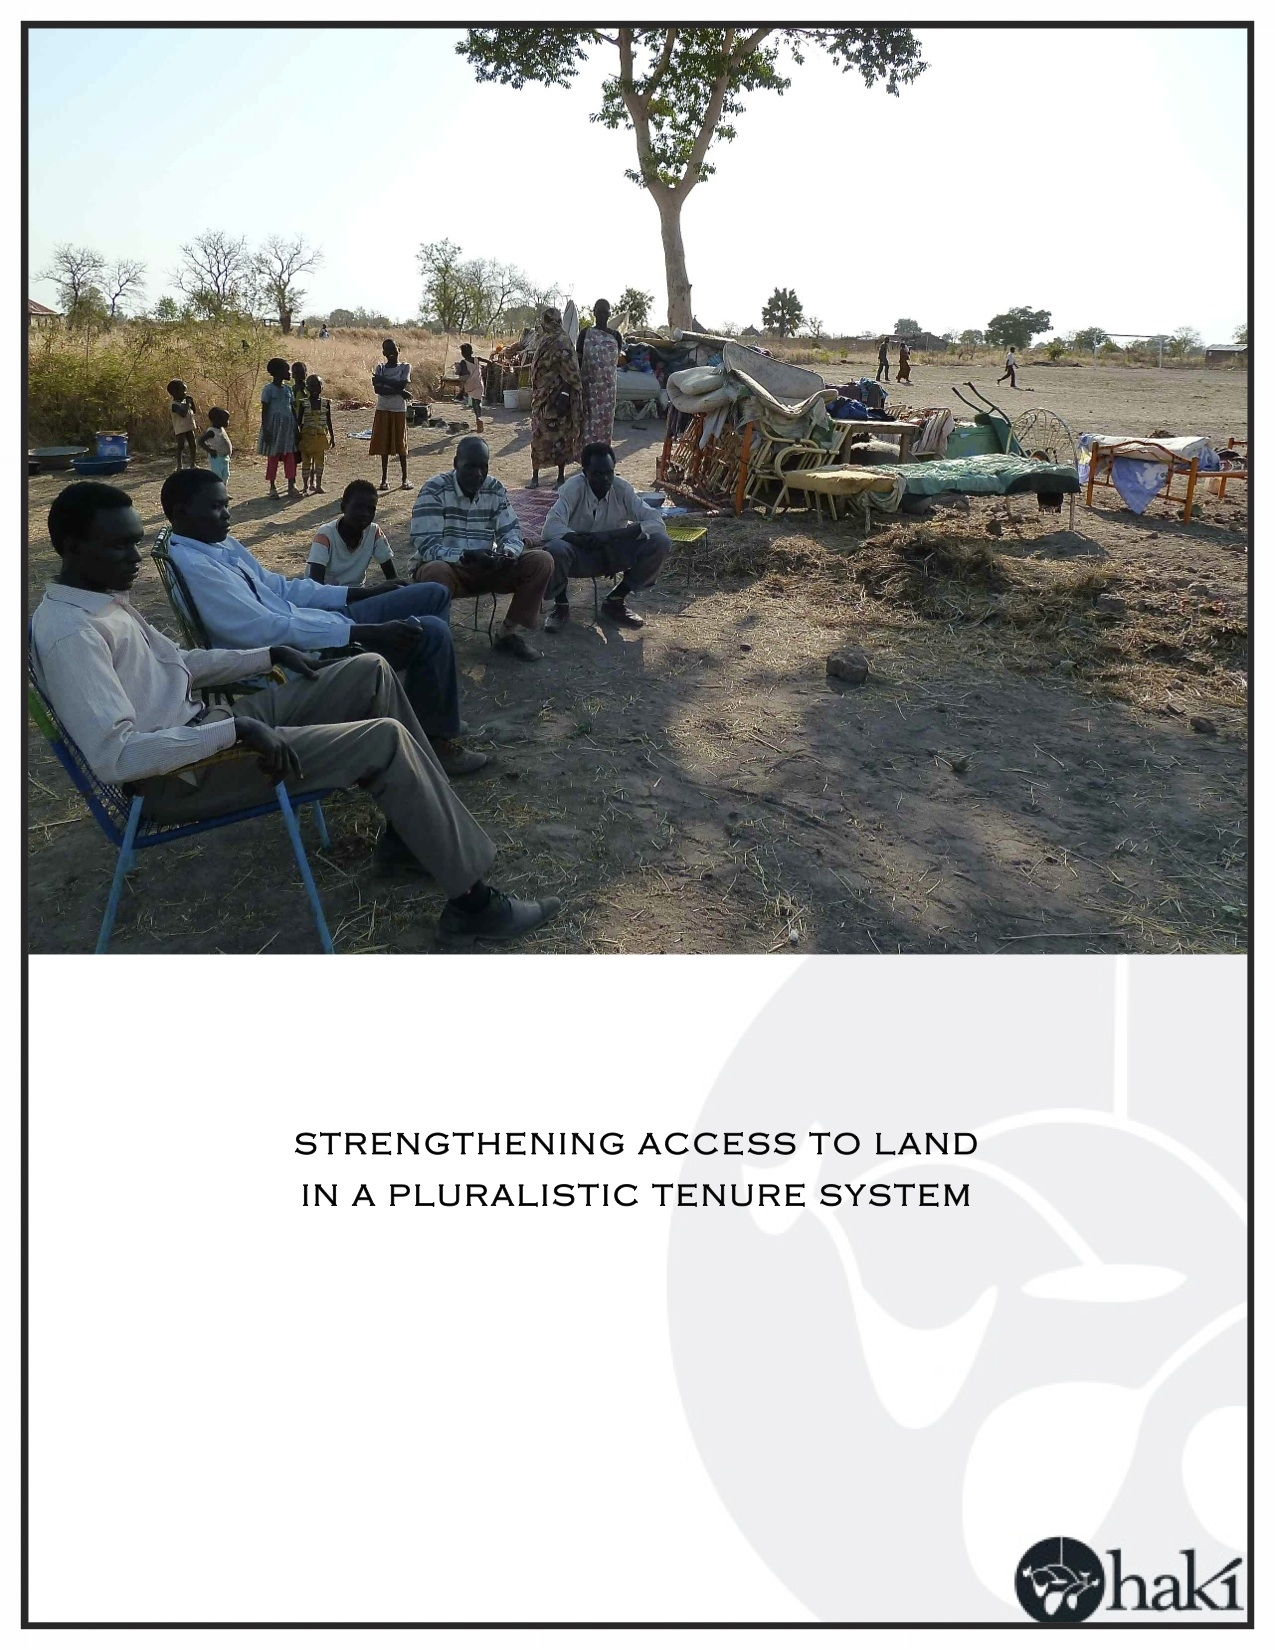 Strengthening Access to Land in Pluralistic Tenure Systems